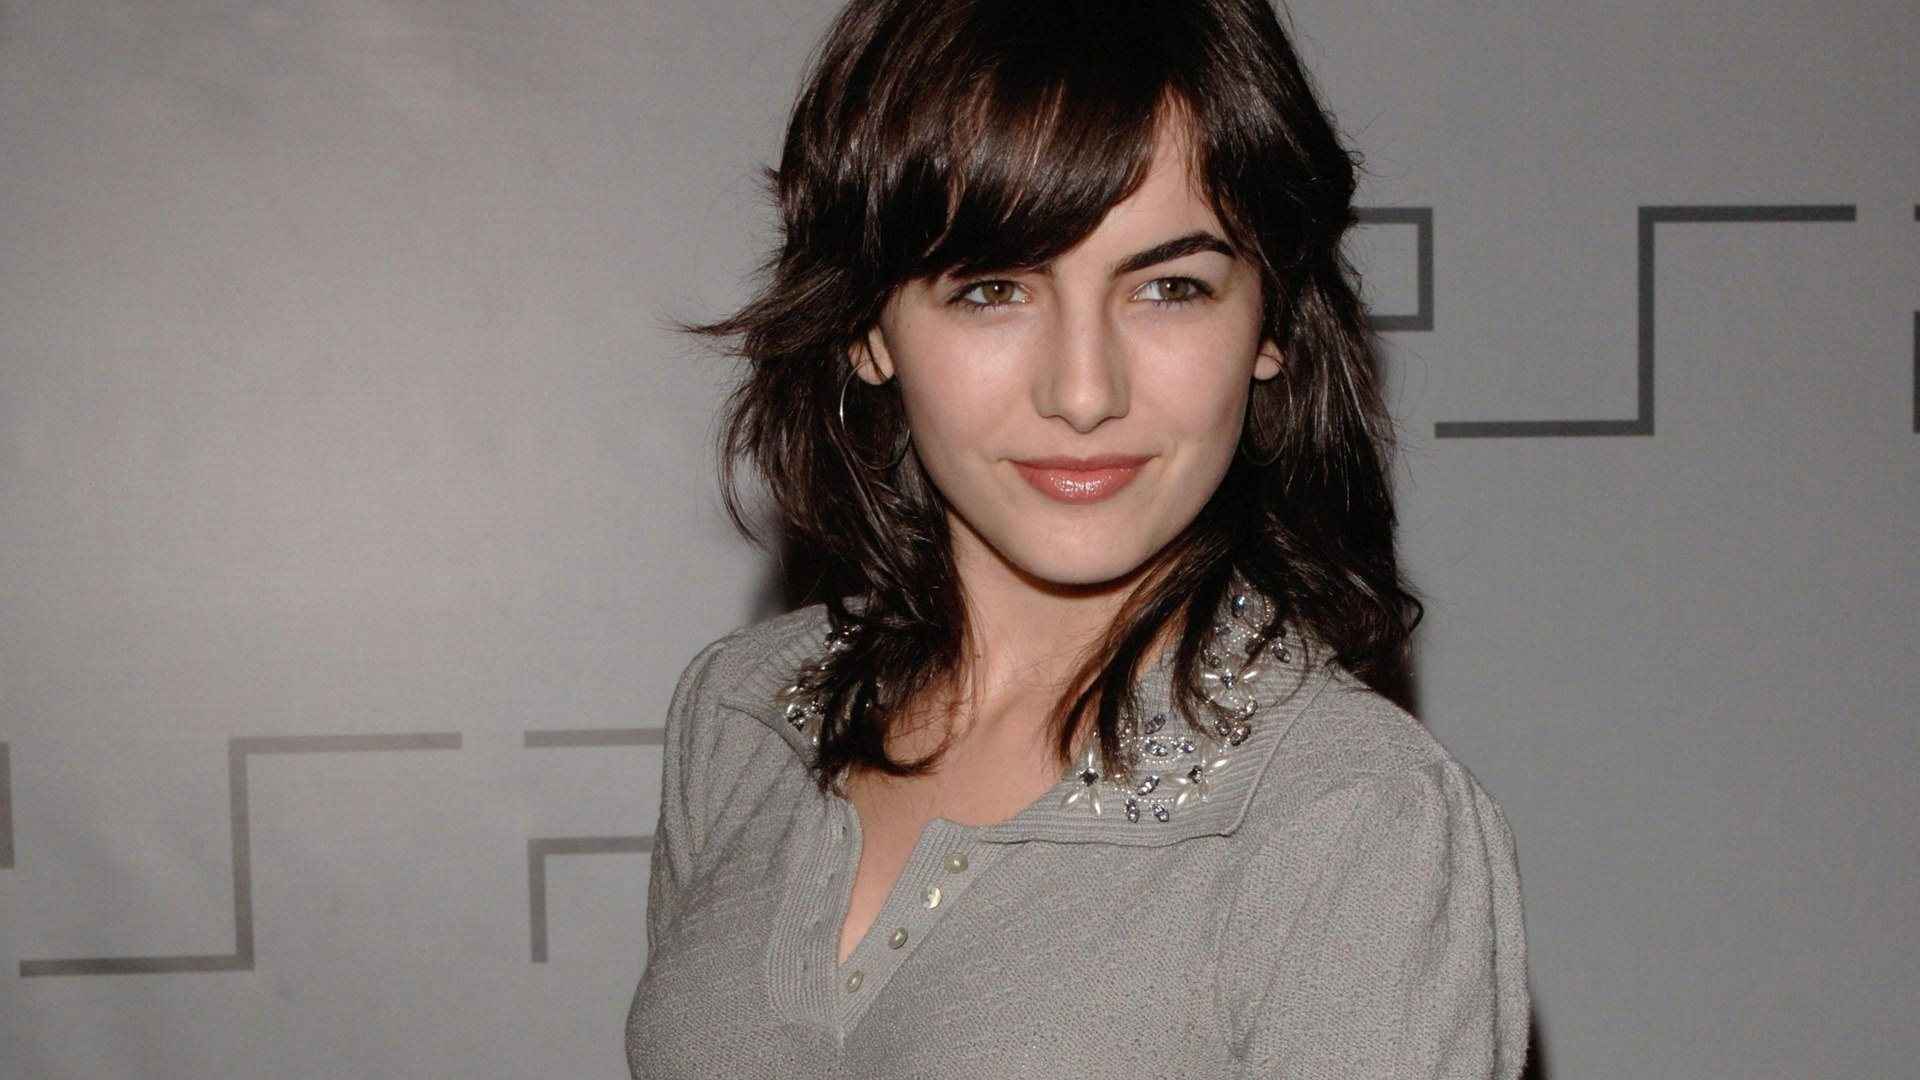 Camilla belle hd wallpapers for Belle image hd